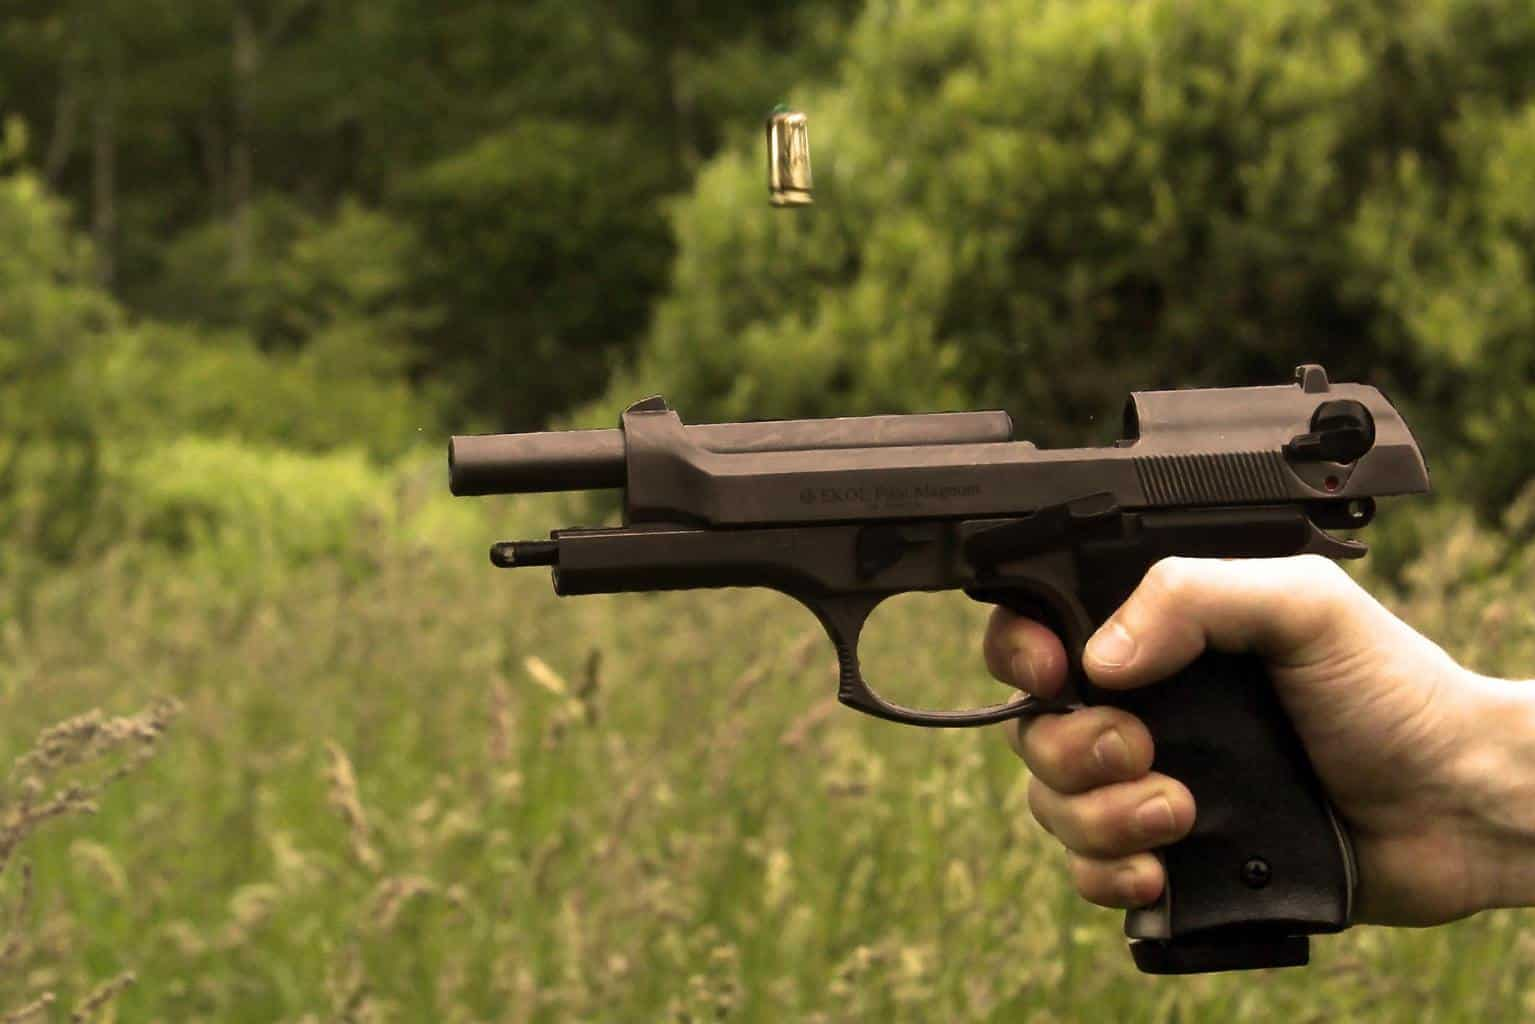 Semi automatic pistol held at shooting point within a grassy land